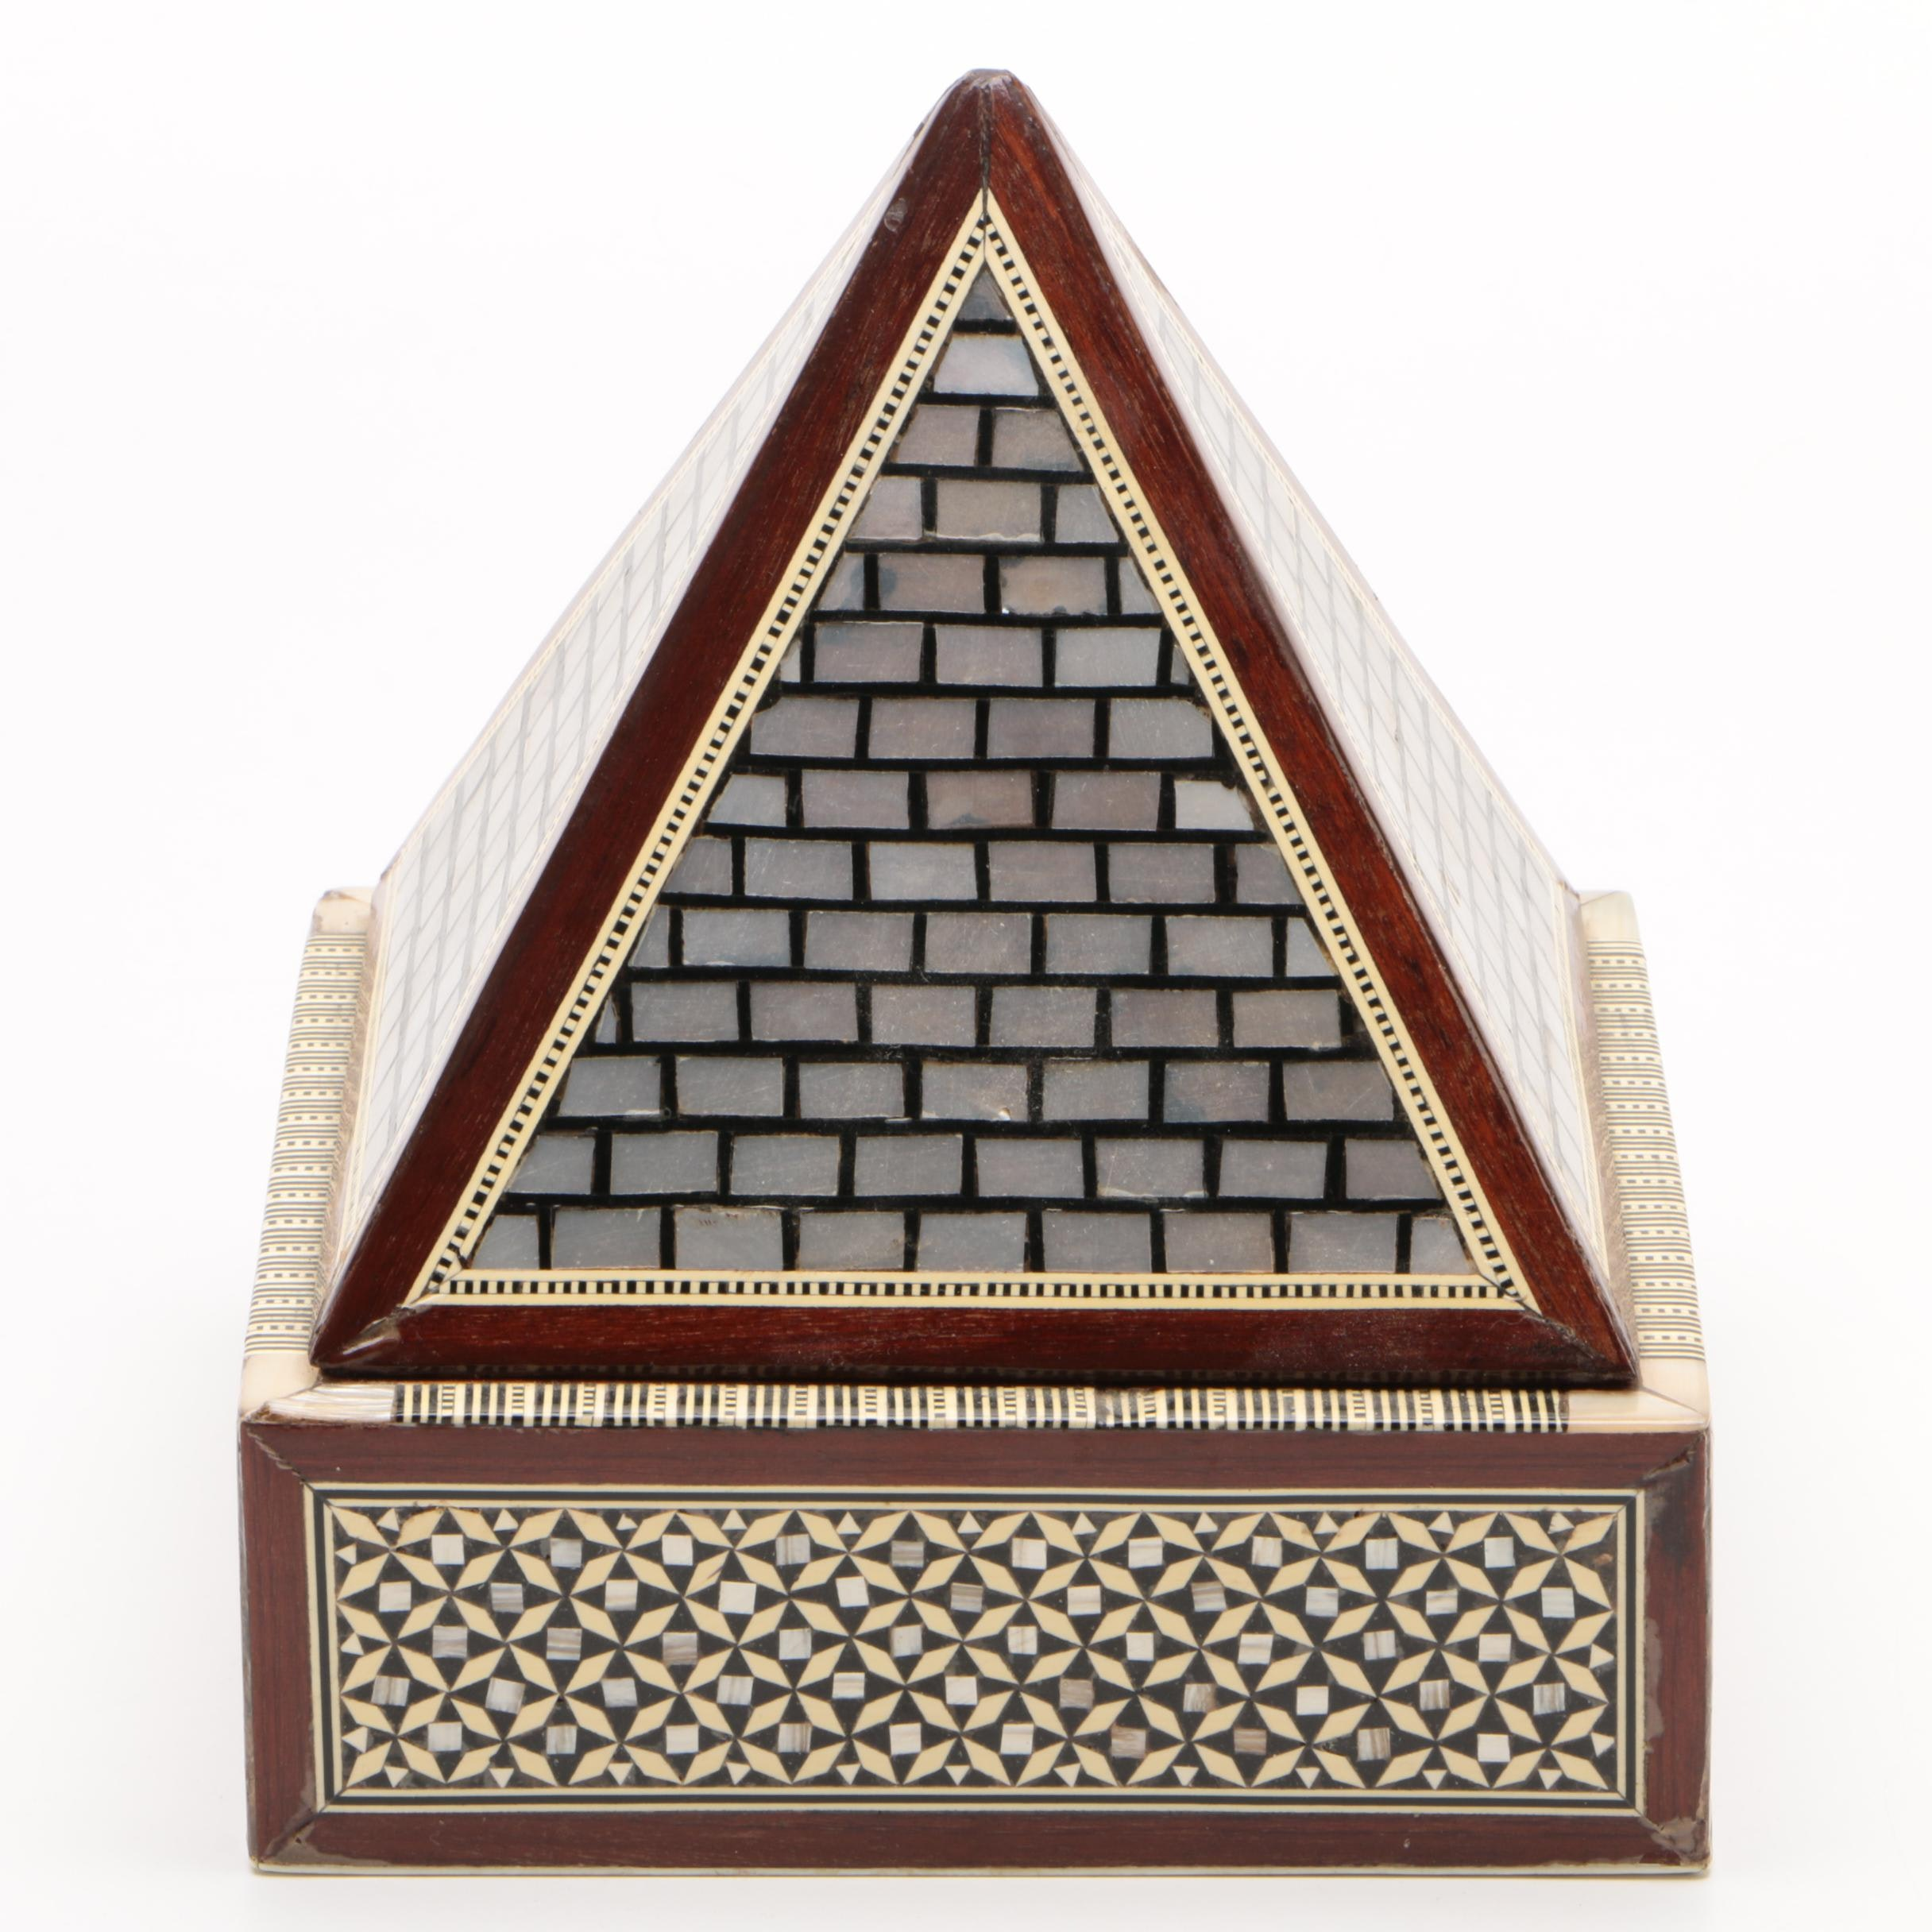 Egyptian Revival Style Metal and Faux Bone Inlaid Wooden Pyramid Jewelry Box